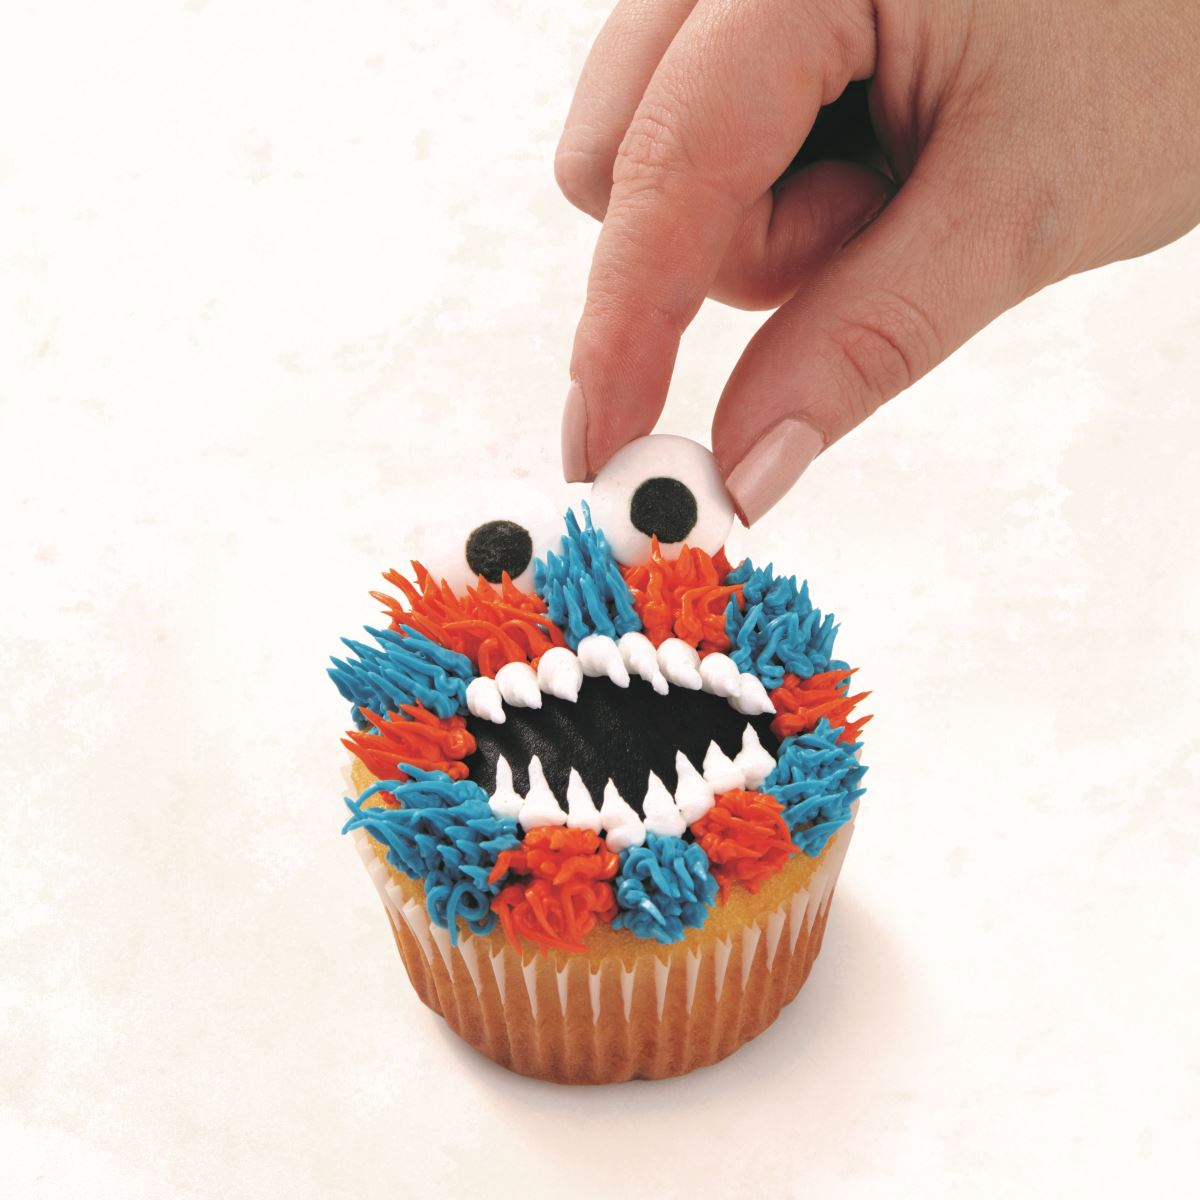 BLUE AND ORANGE MONSTER CUPCAKE step 8